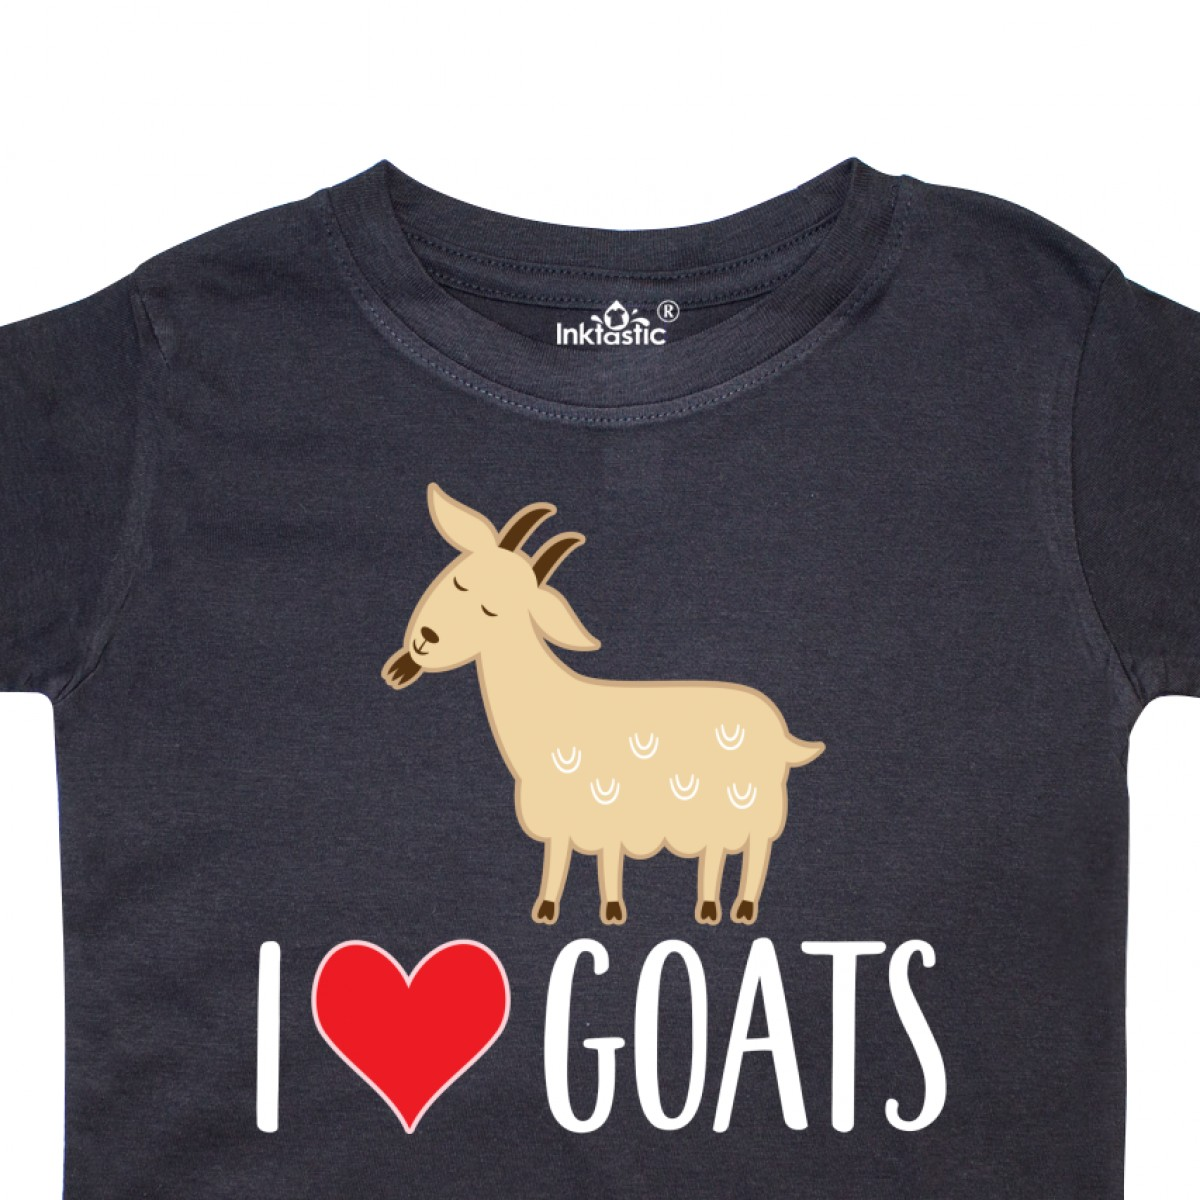 Inktastic-Goat-Cute-I-Love-Goats-Farm-Animal-Toddler-T-Shirt-Lover-Farmer-Gift thumbnail 4